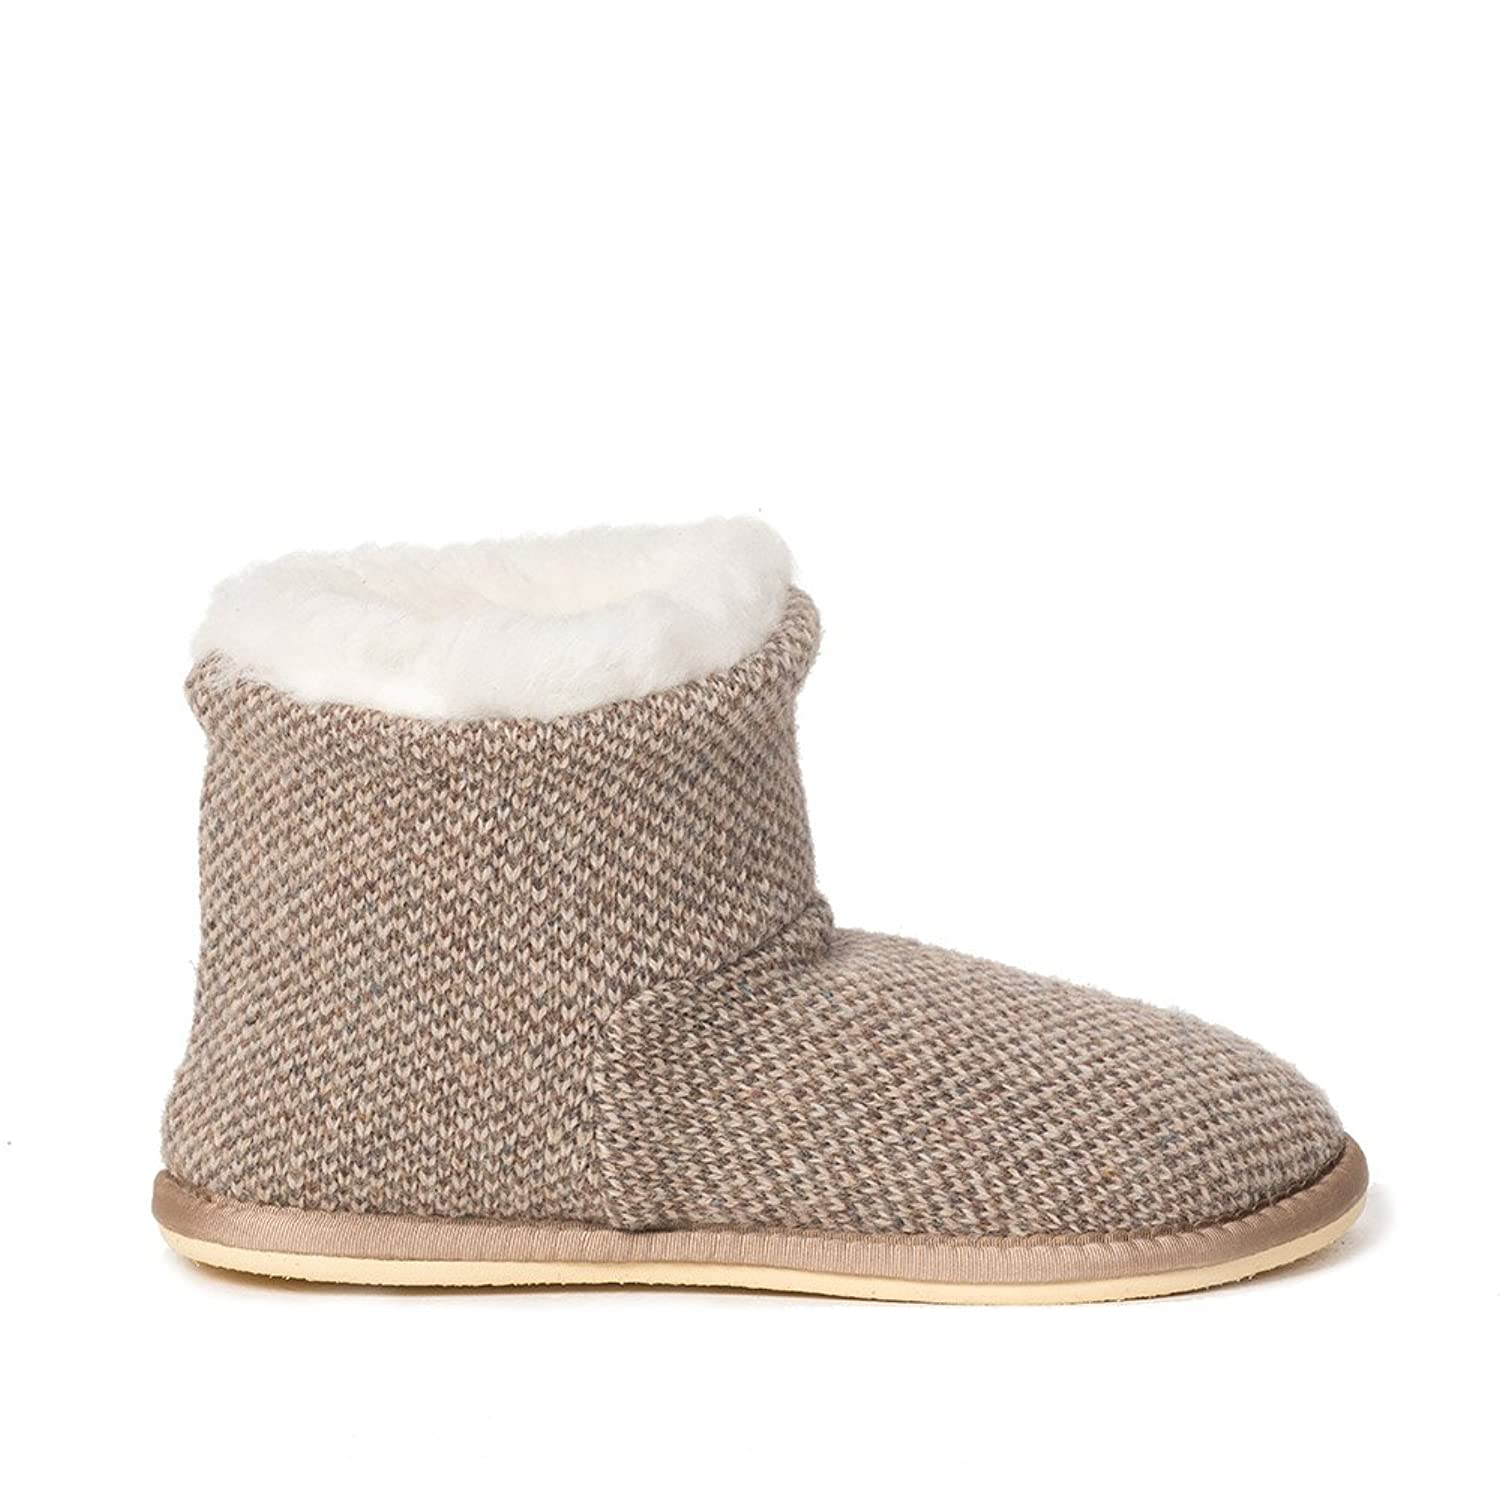 Amazon.com | Celtic and Co Womens Knitted Boot British Sheepskin Lined  Slippers - Pebble - Size 4 | Slippers